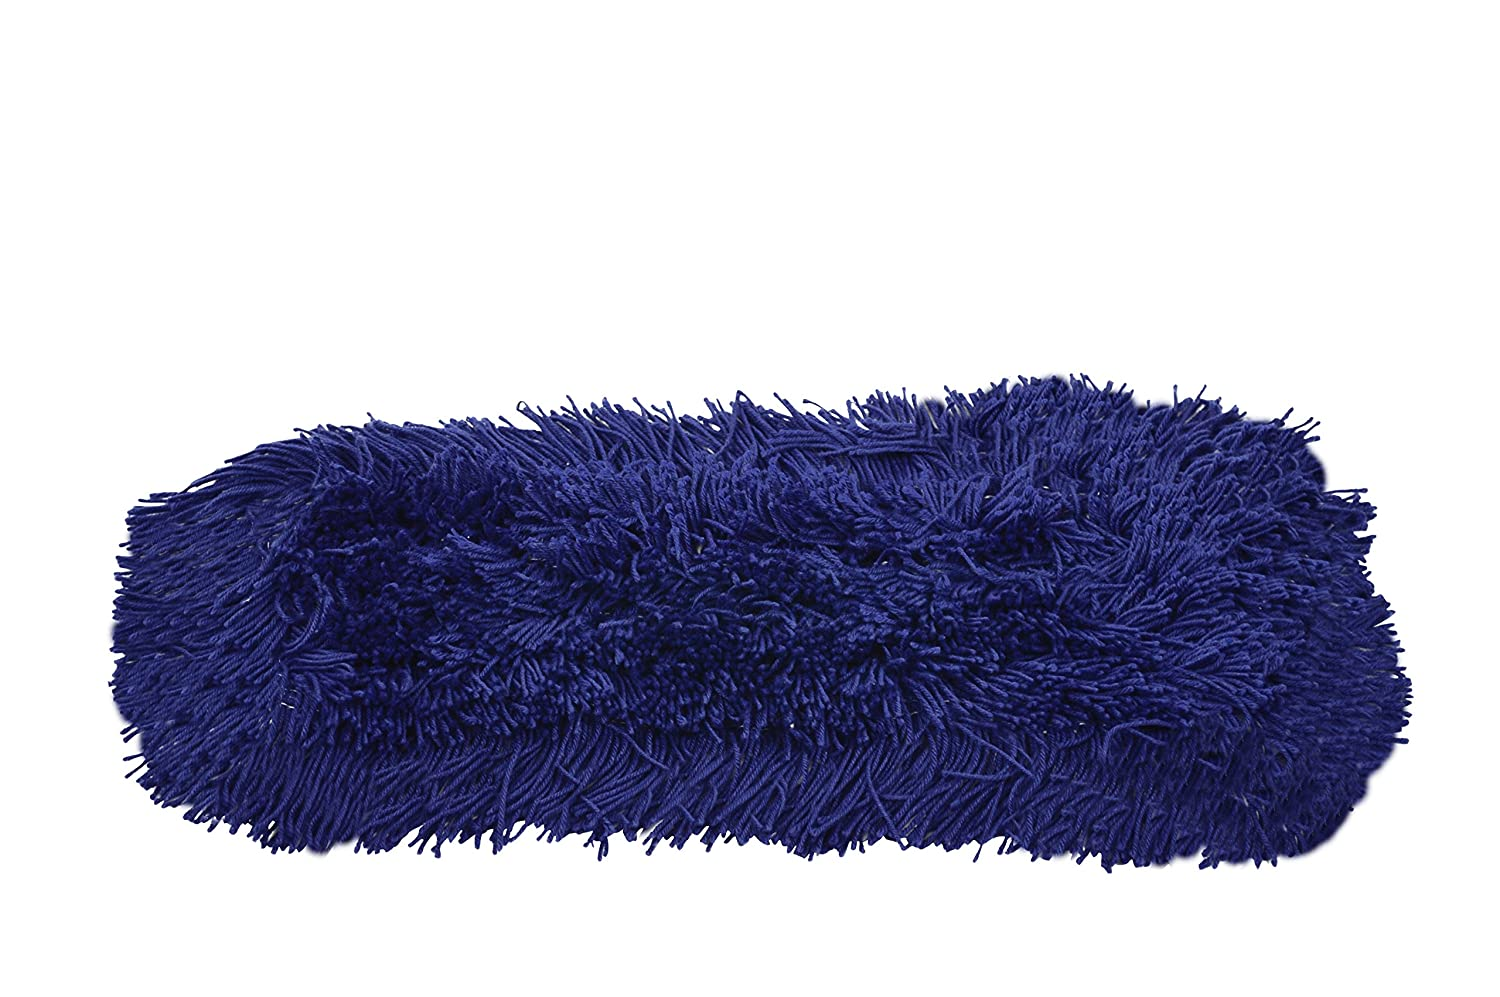 SYR 920212 Dust Defeater Sweeper, Replacement Head, 80 cm Length, Blue (Pack of 5) SYR Benelux V.O.F.